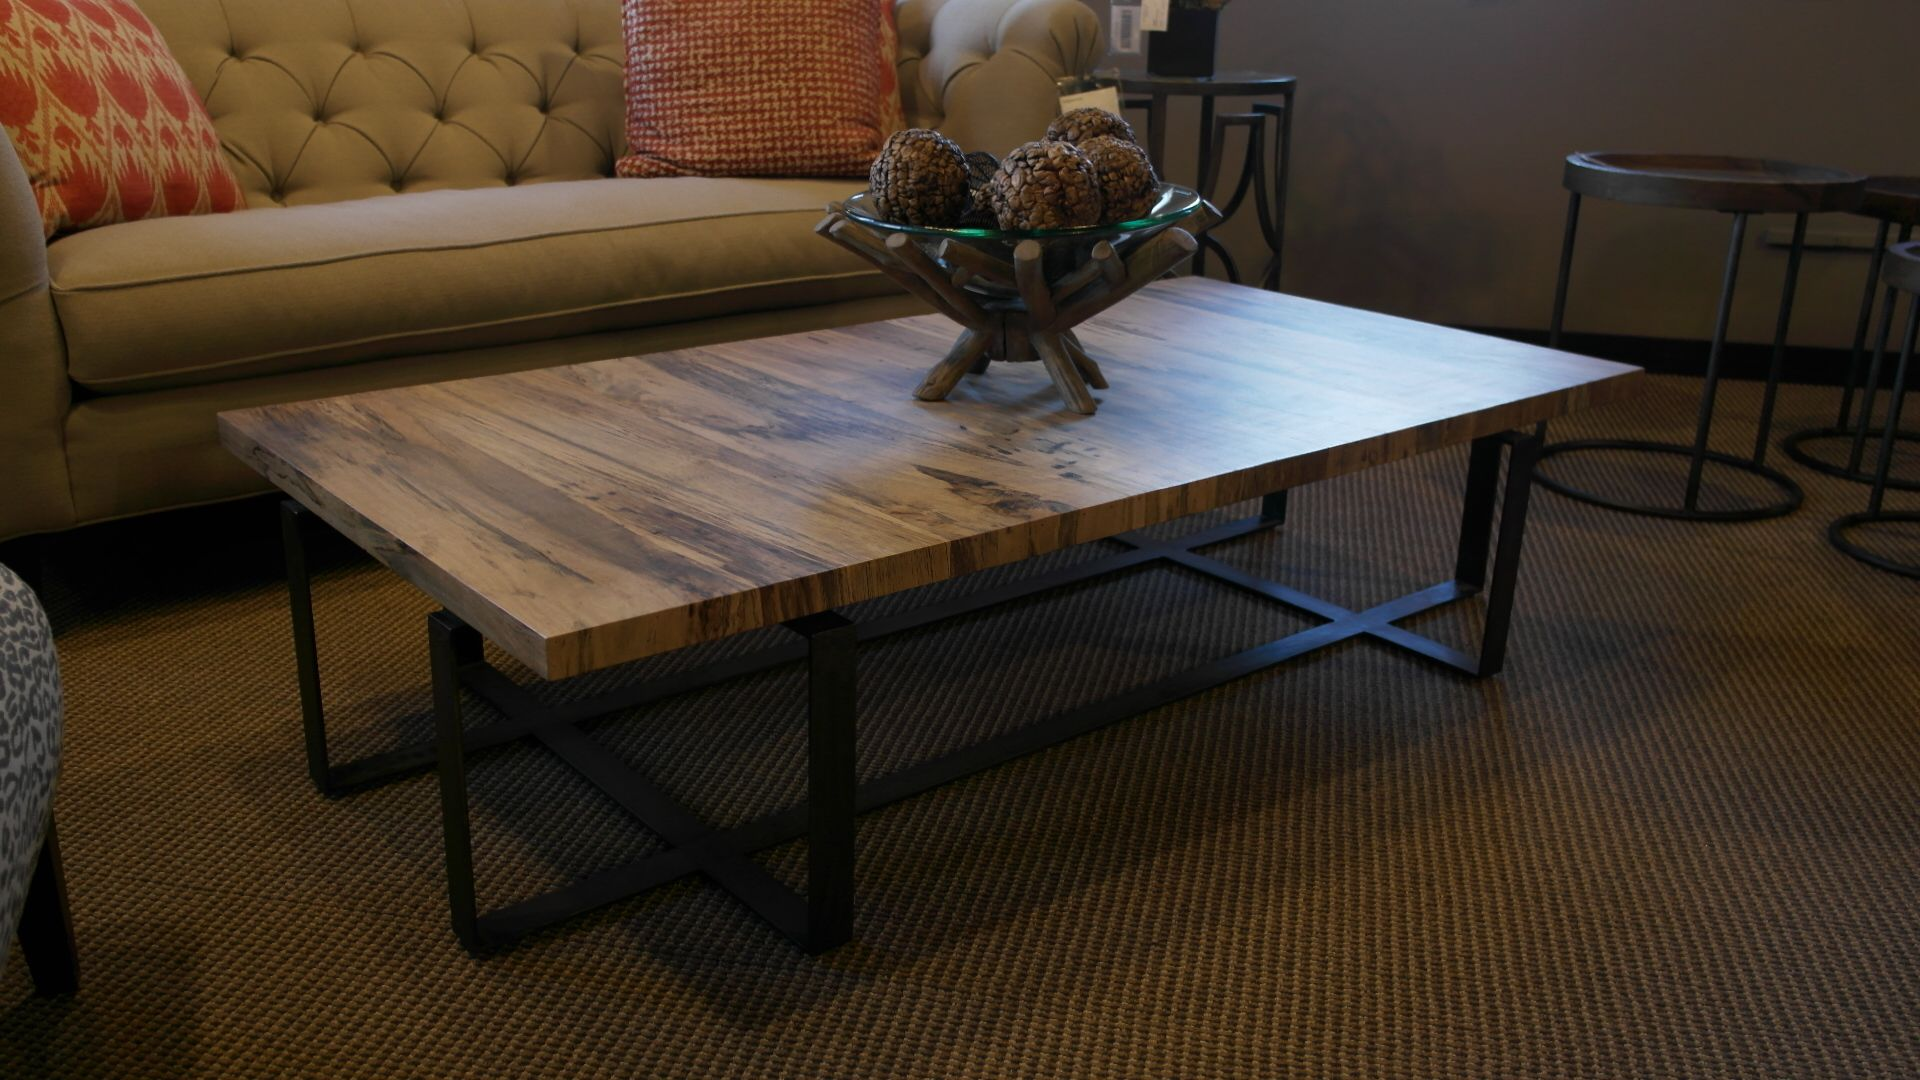 Quad Loop Table Interior Design Decor Inspiration Furniture